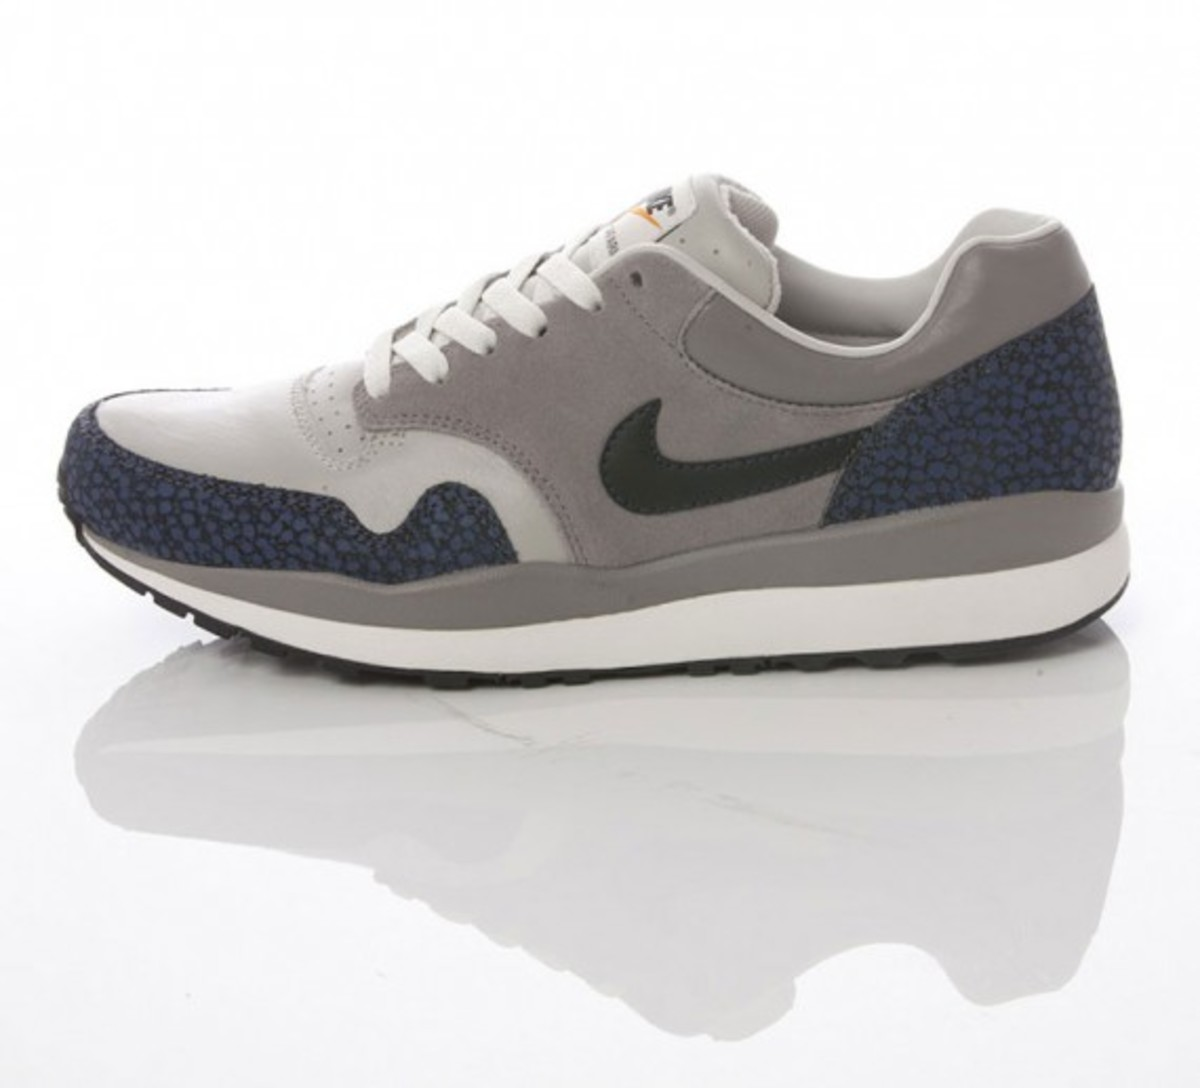 nike-sportswear-grey-navy-collection-19